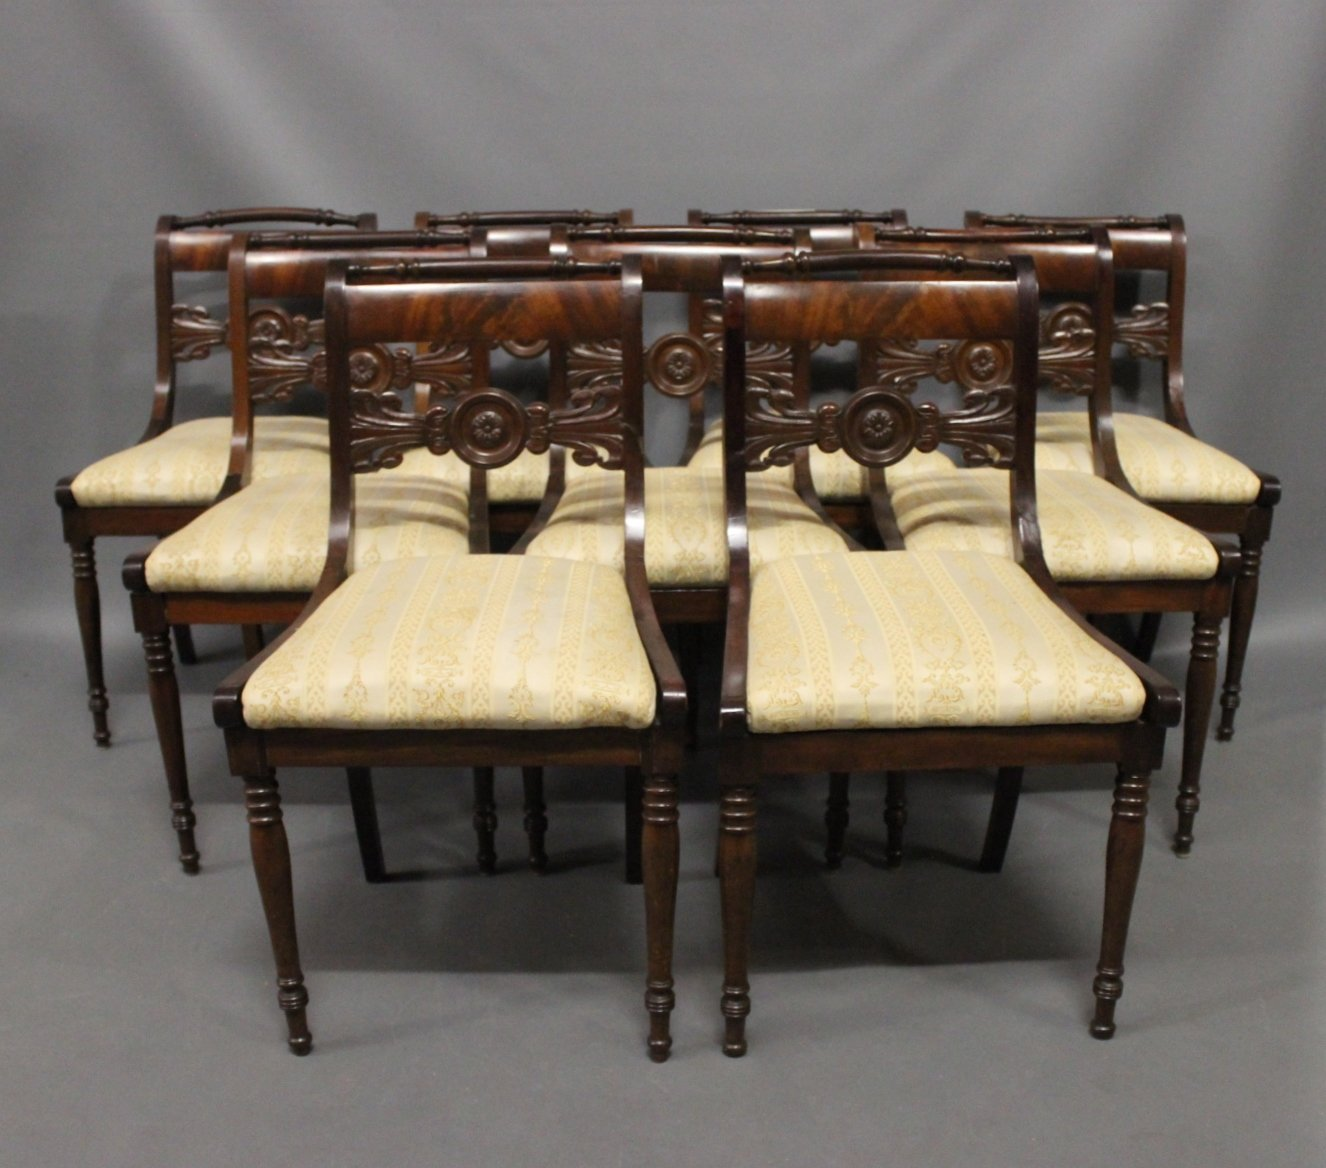 . Antique Danish Chairs  19th Century  Set of 9 for sale at Pamono